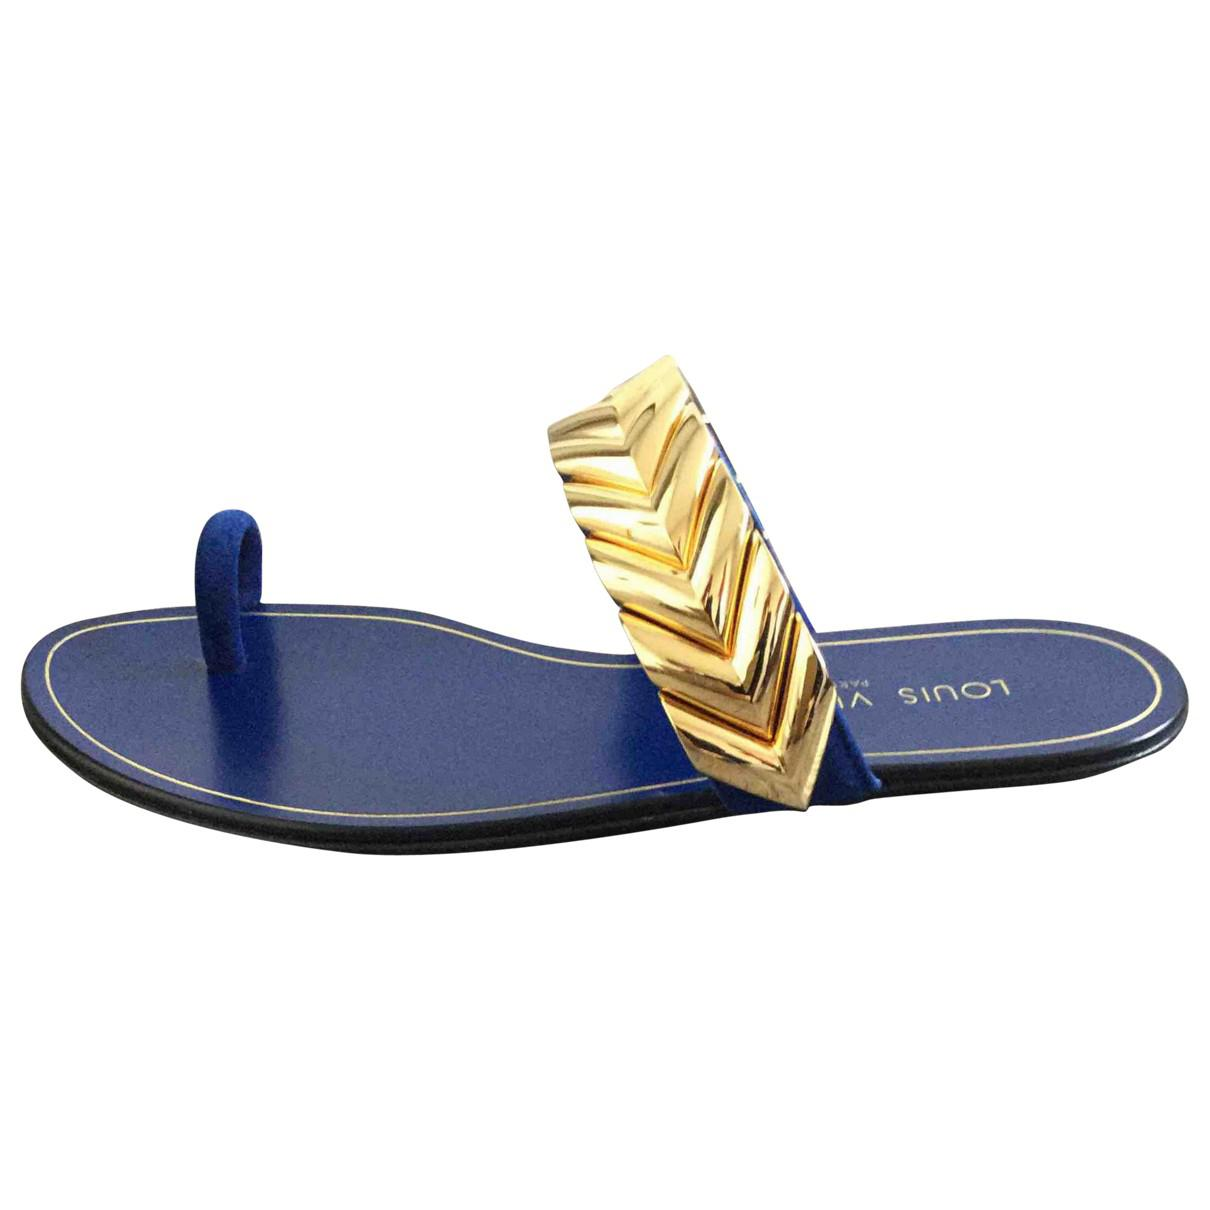 Pre-owned - Flip flops Louis Vuitton WmOVwTgi